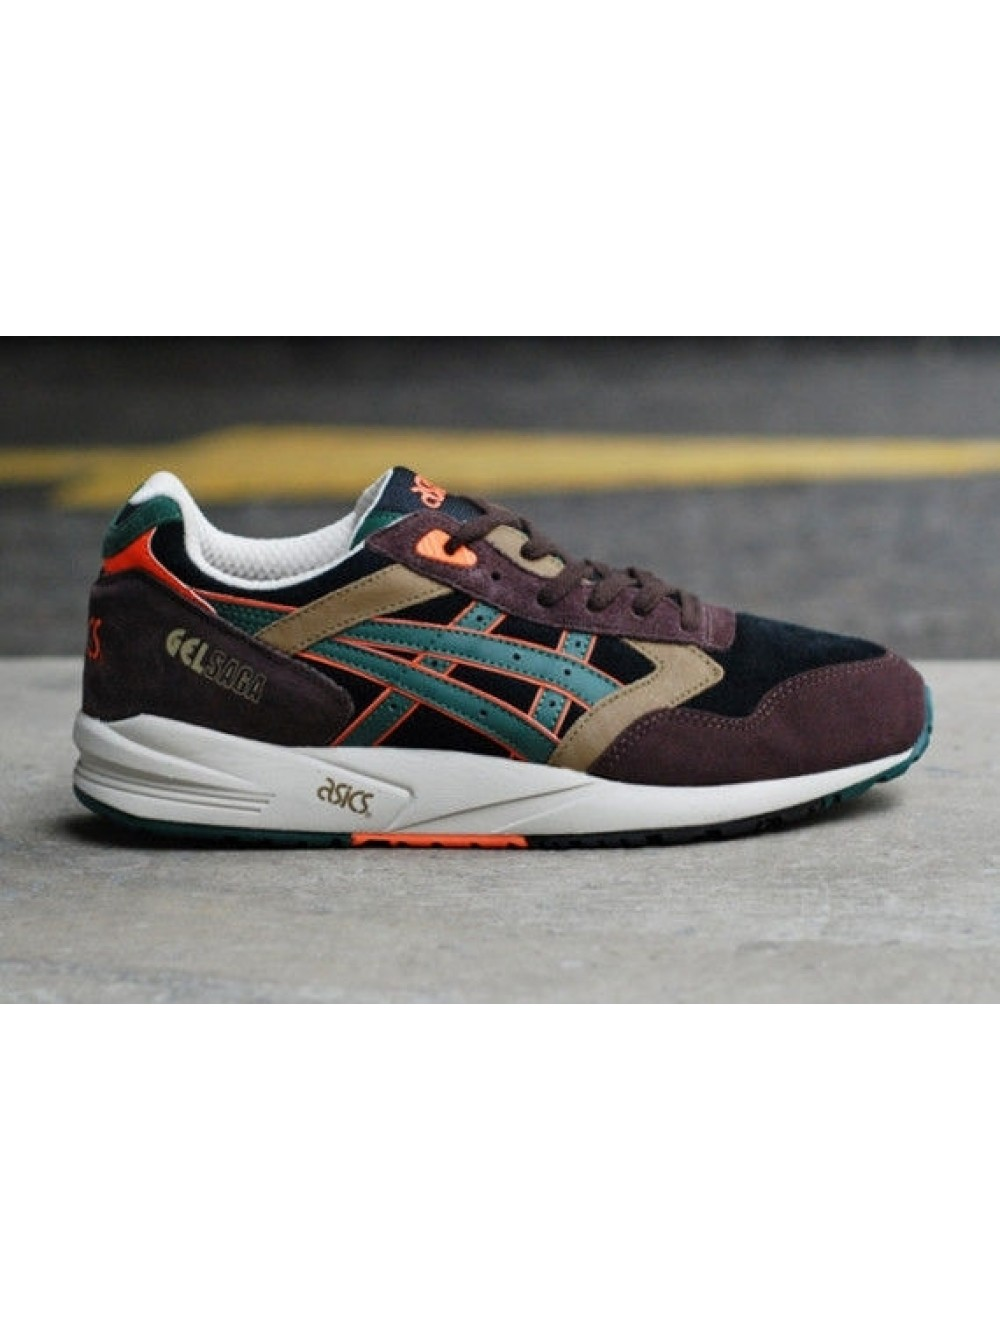 outlet store 87d1a f3360 Кроссовки Asics Gel Saga Camo Pack 4